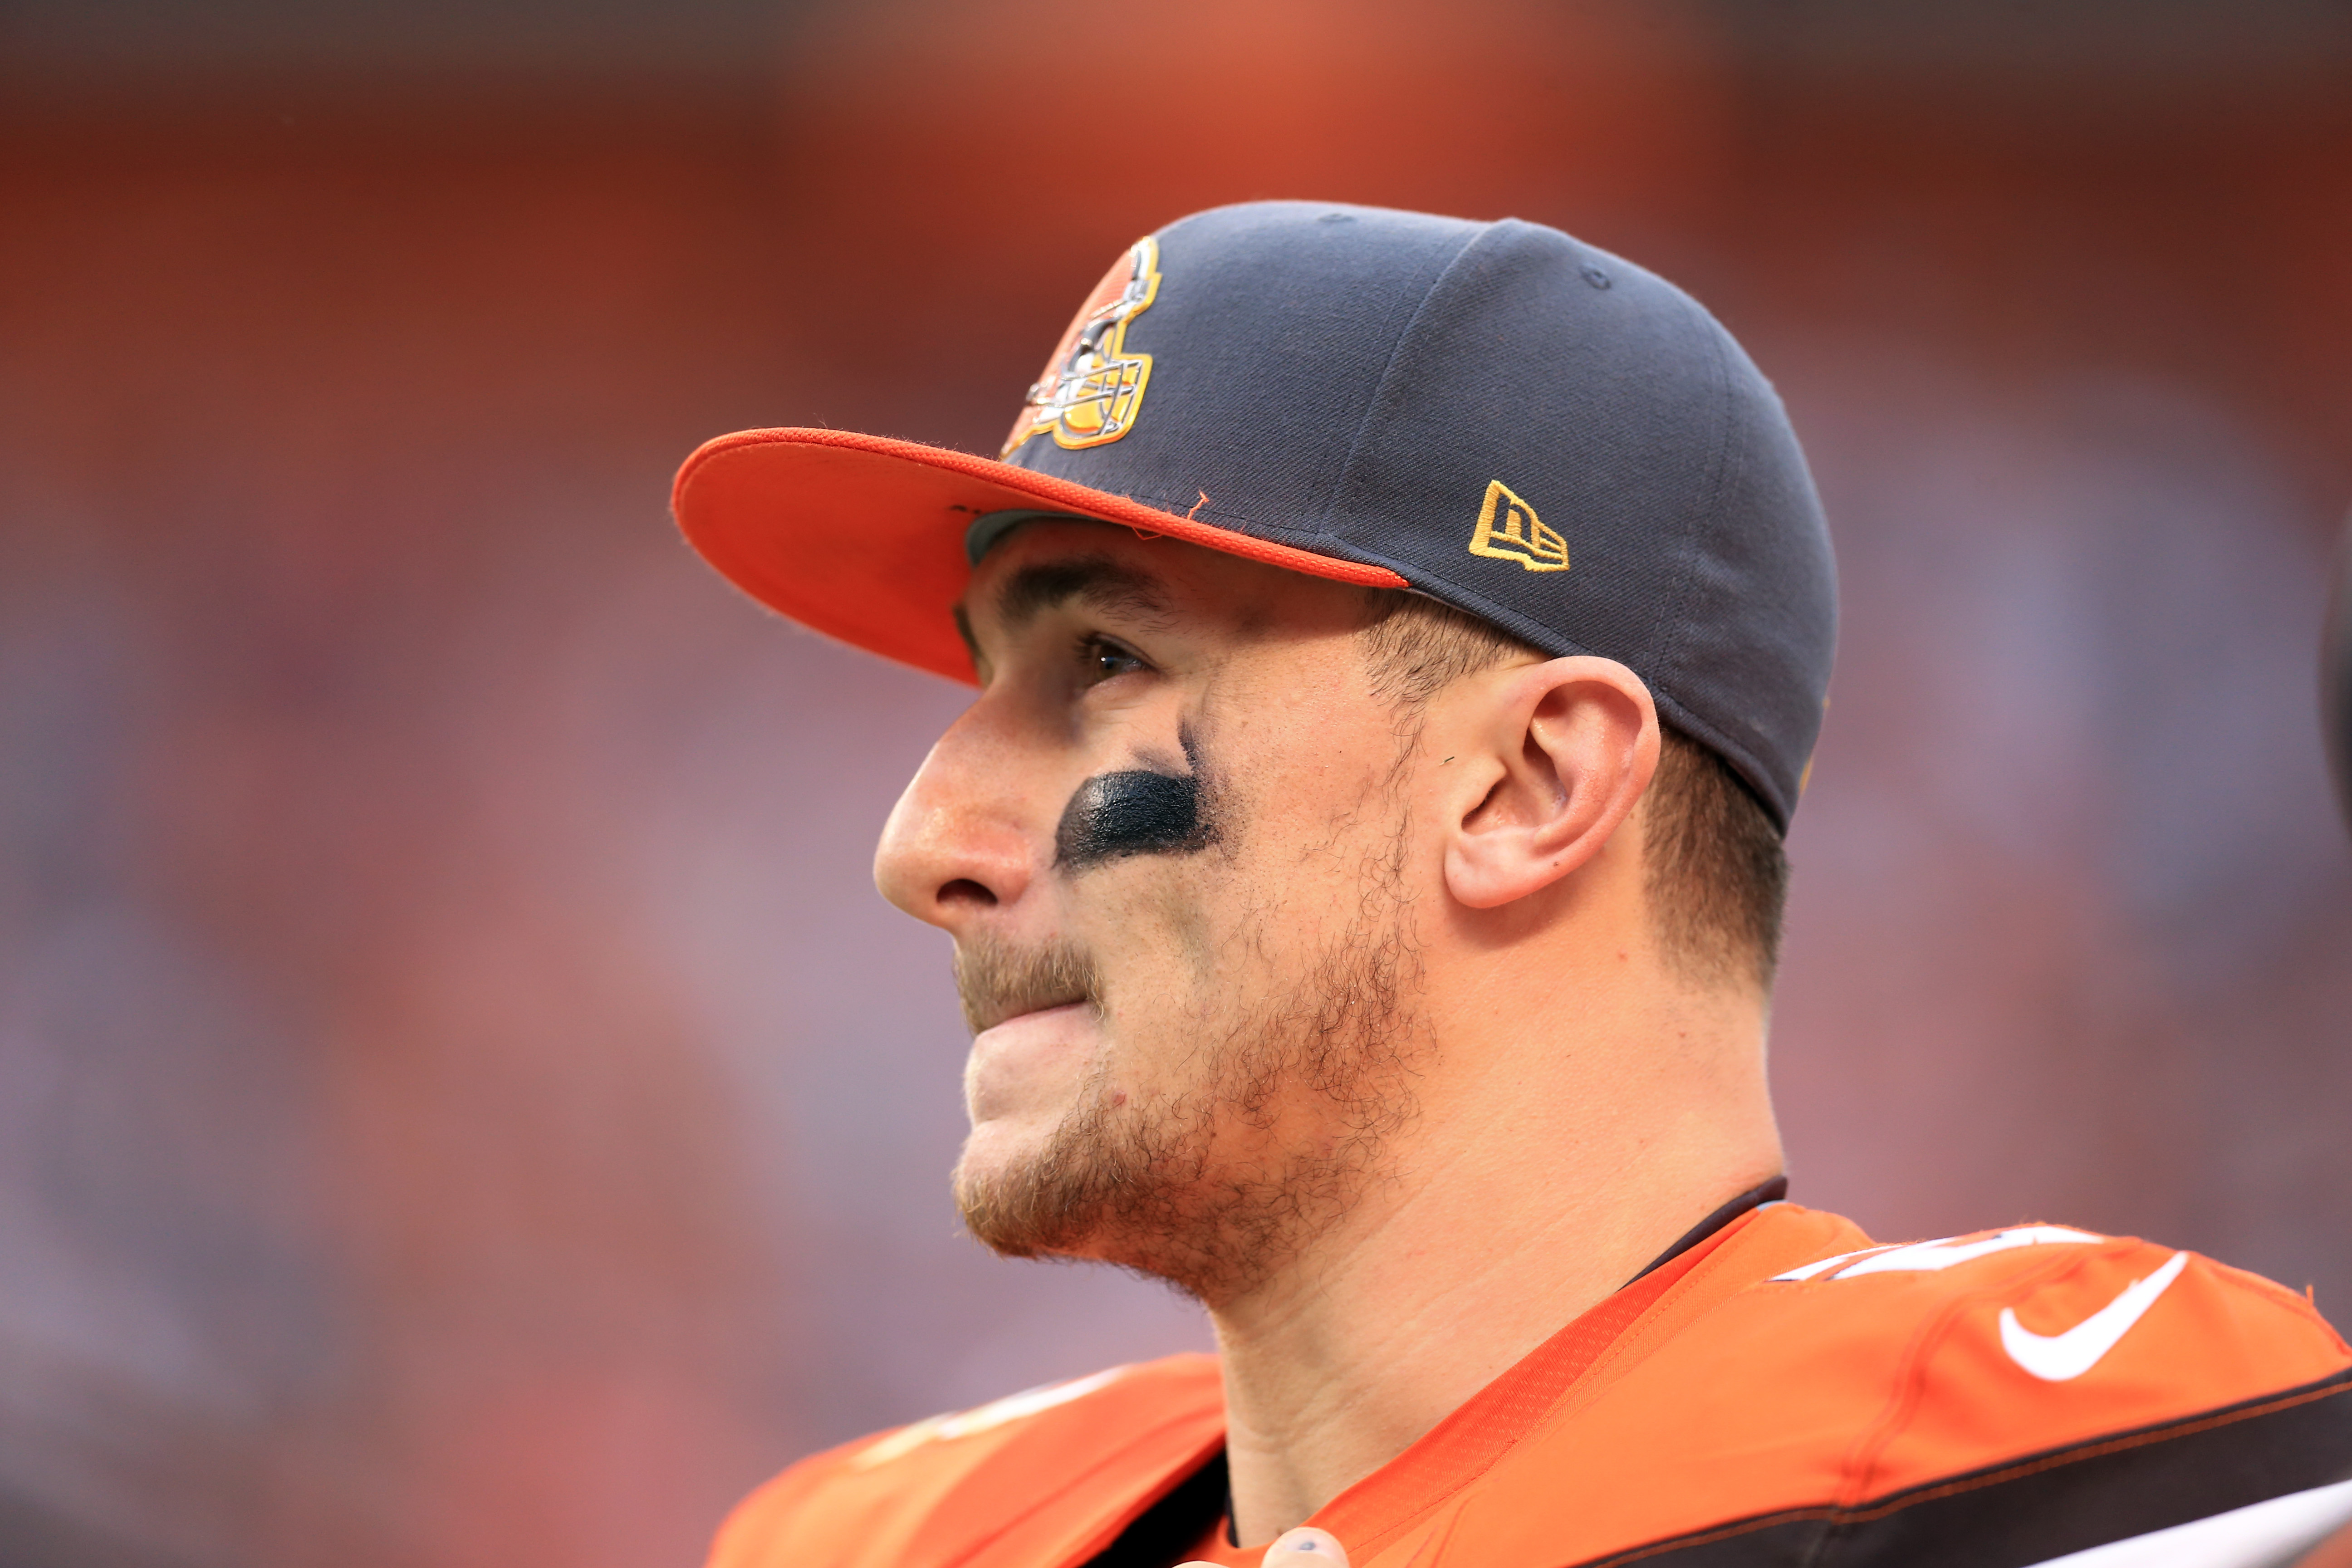 Johnny Manziel: Former Cleveland Browns Quarterback Says He Hopes to 'Take Care' of Issues